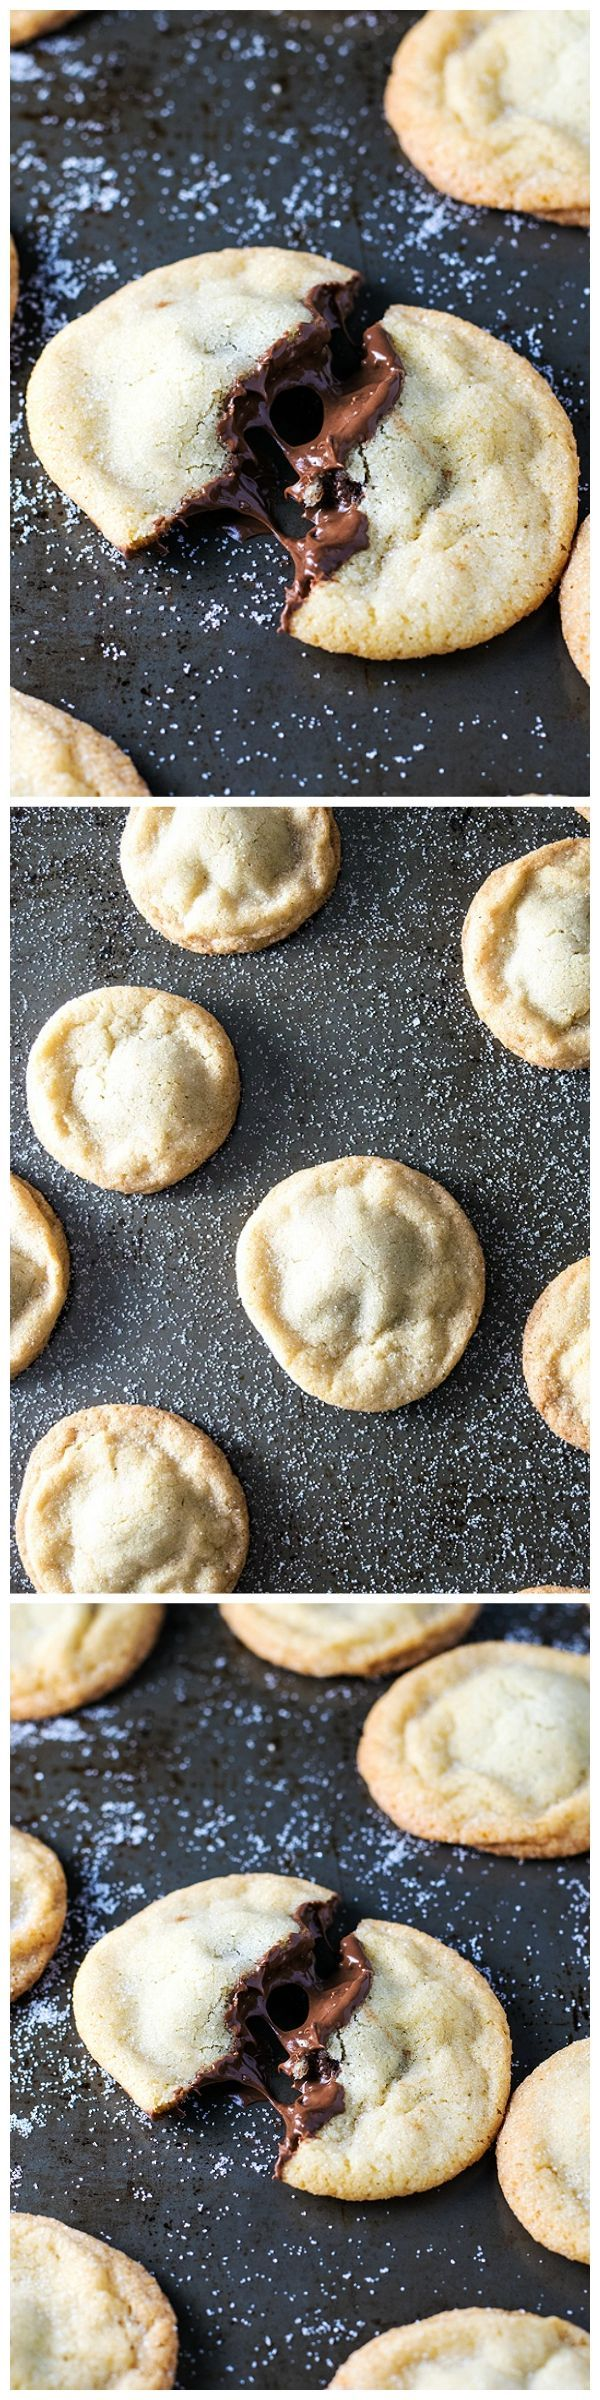 Nutella Stuffed Cookies Old fashioned soft and chewy